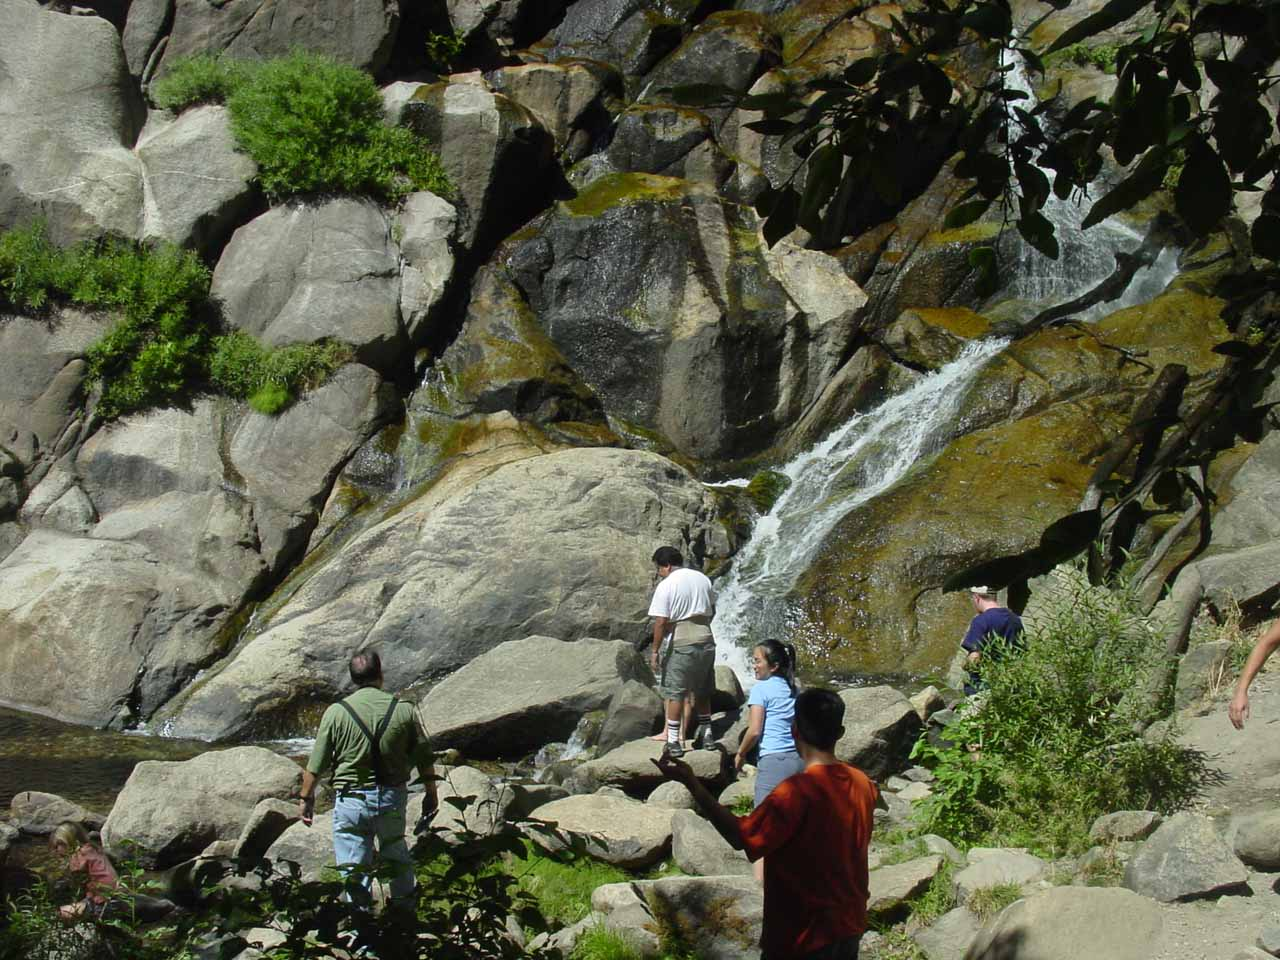 Some folks enjoying themselves by the plunge pool of Grizzly Falls in the late Summer